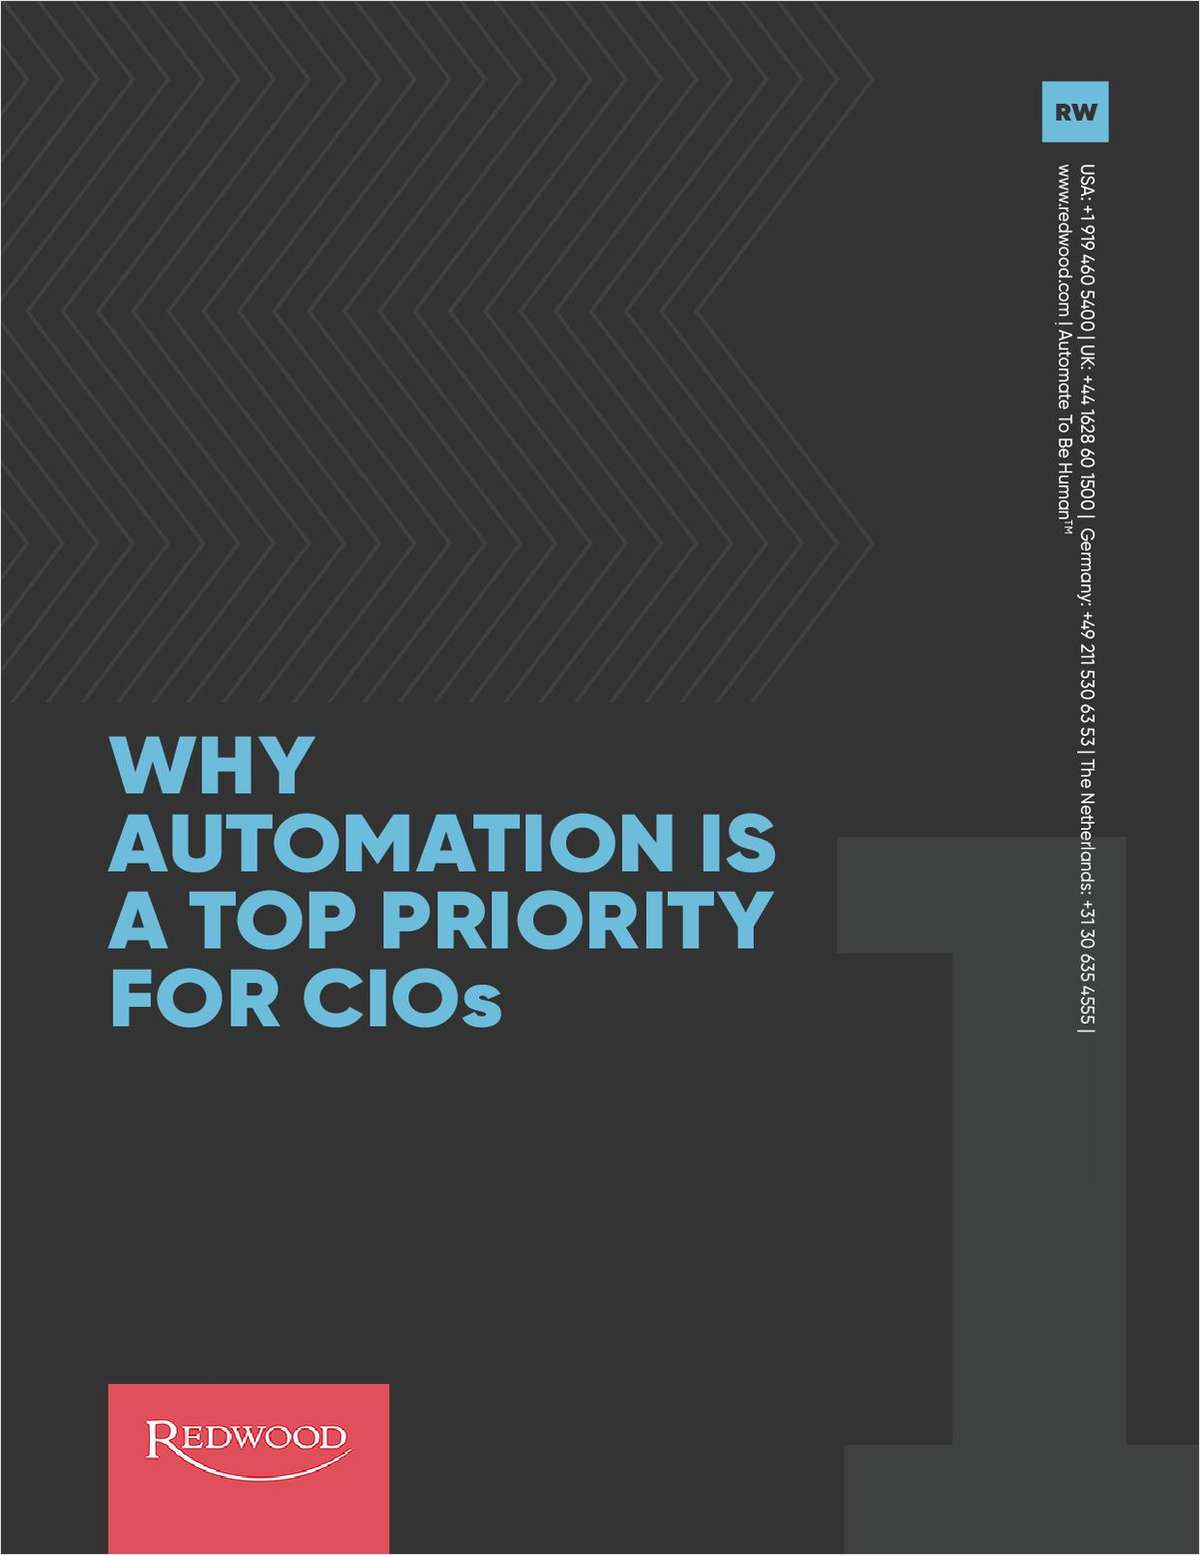 Why Automation Is a Top Priority for CIOs